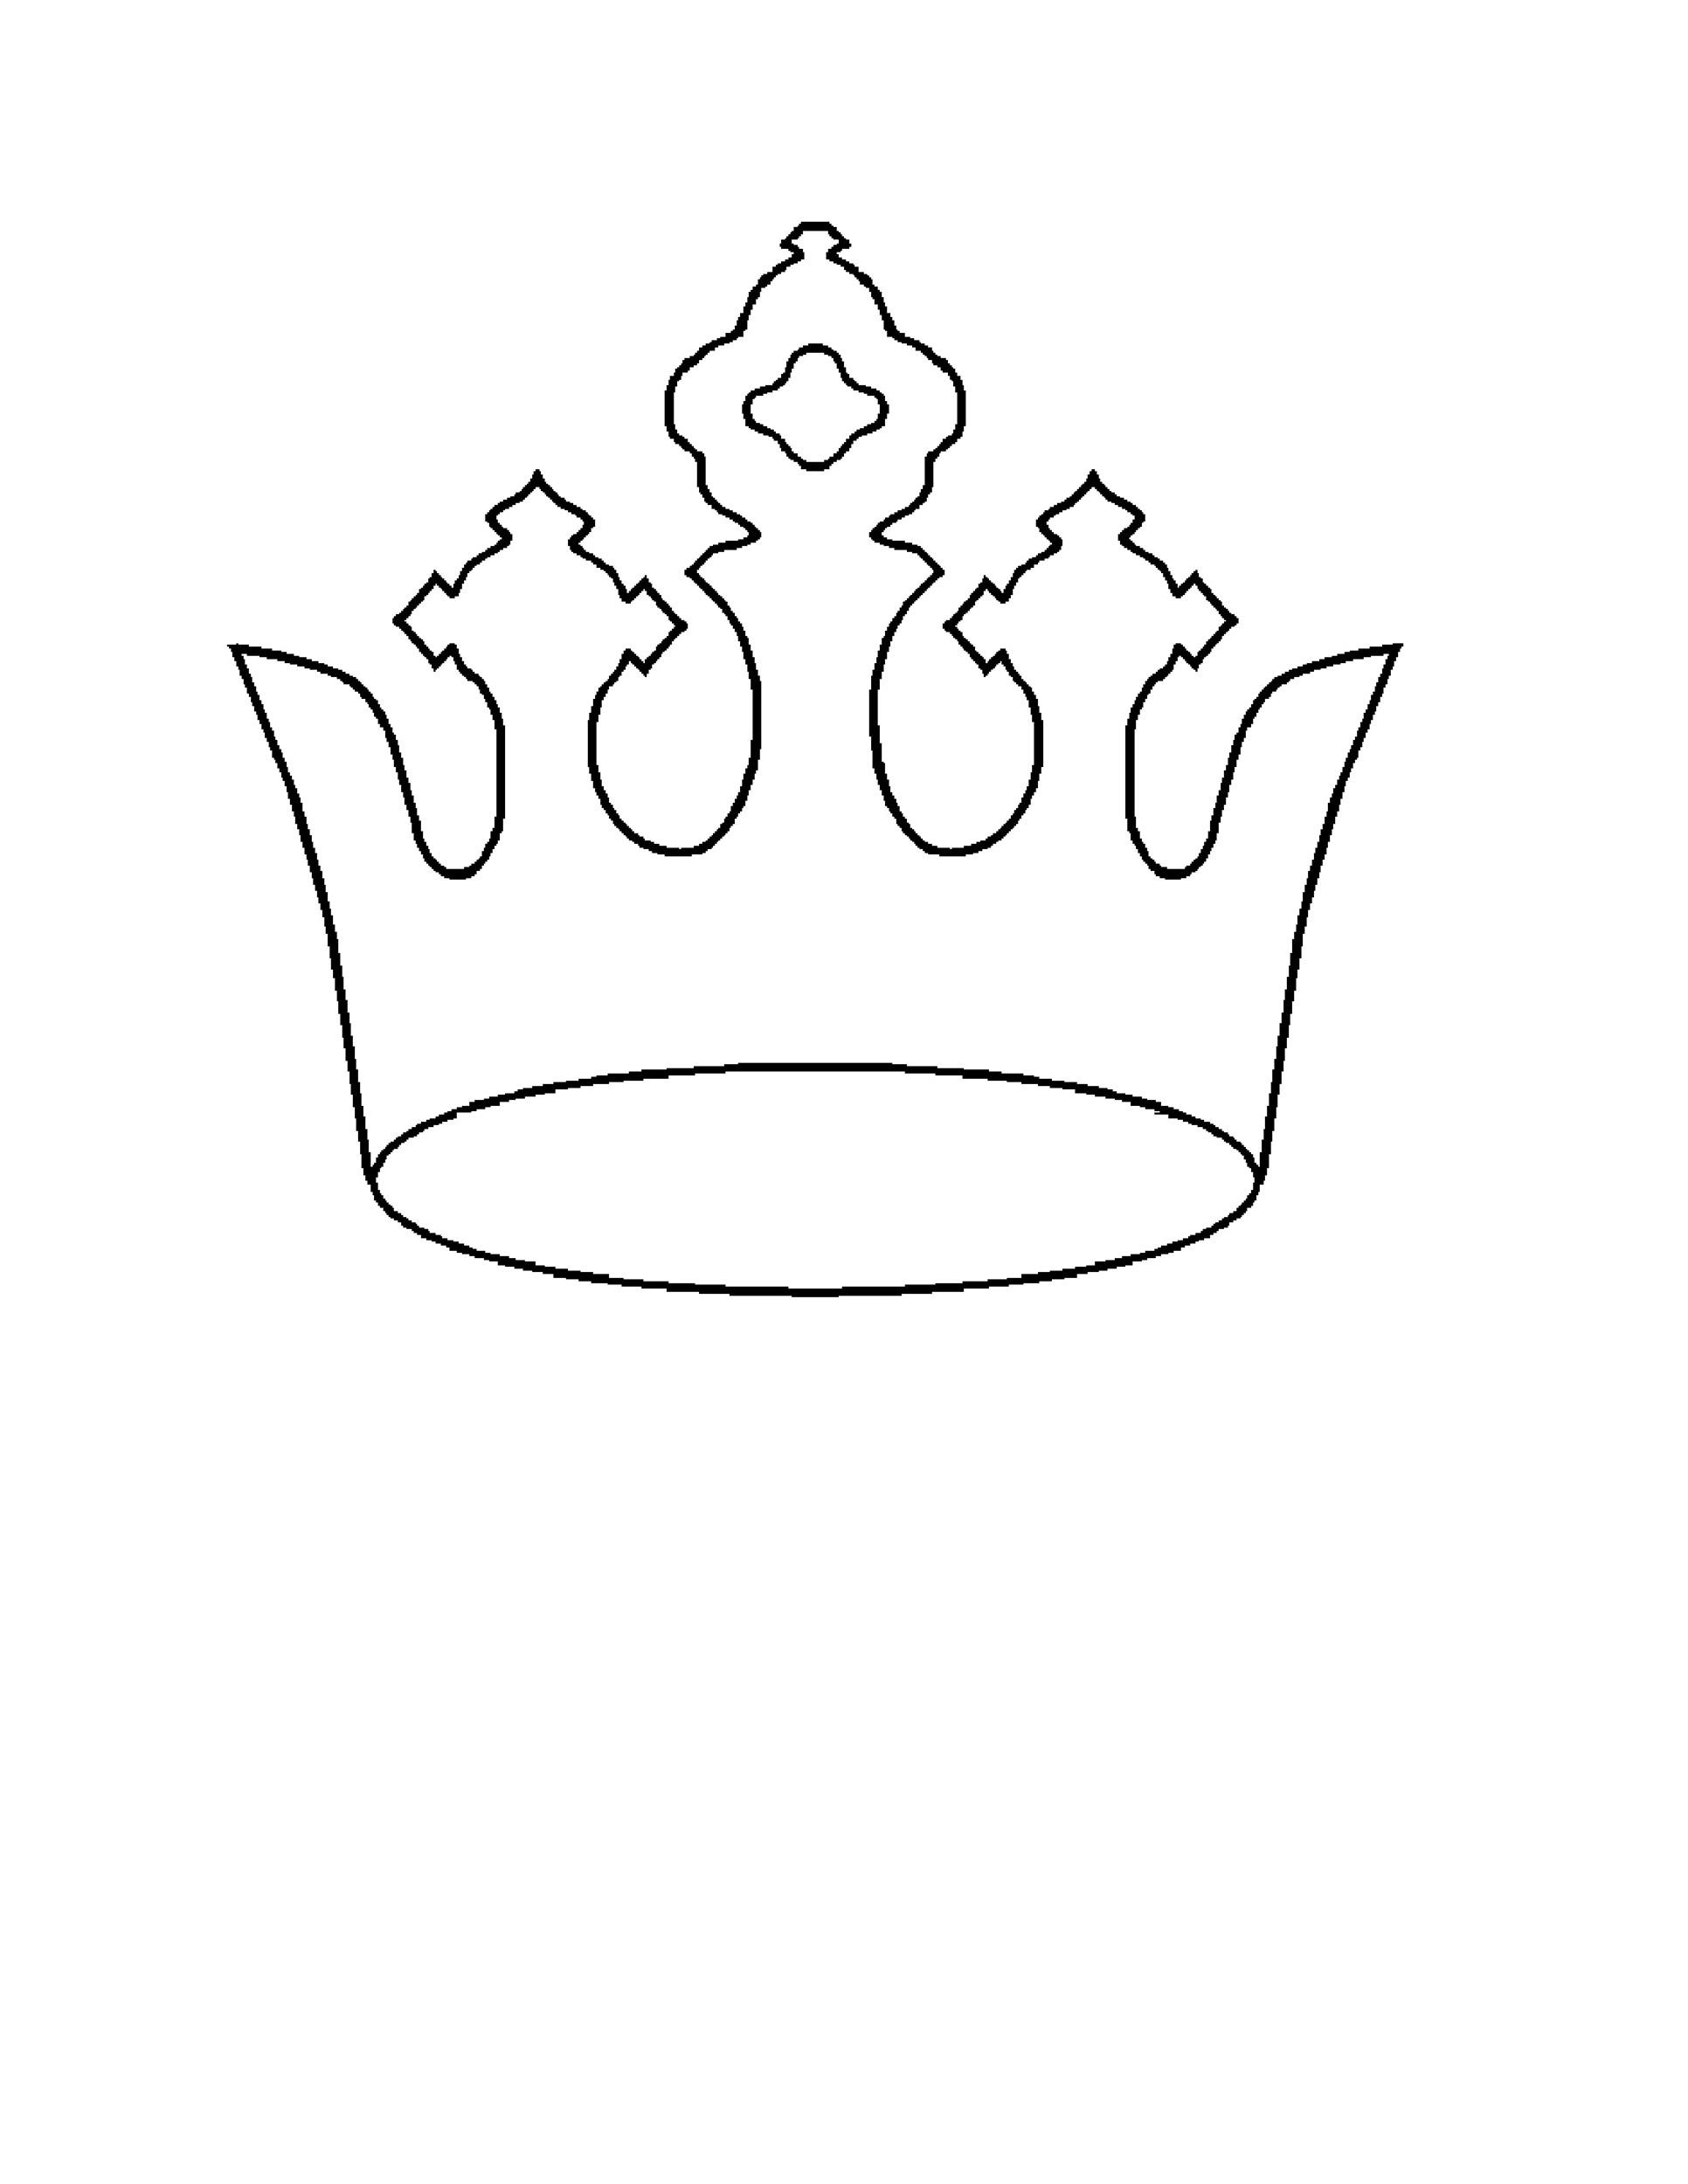 Priceless Crown Pattern Printable